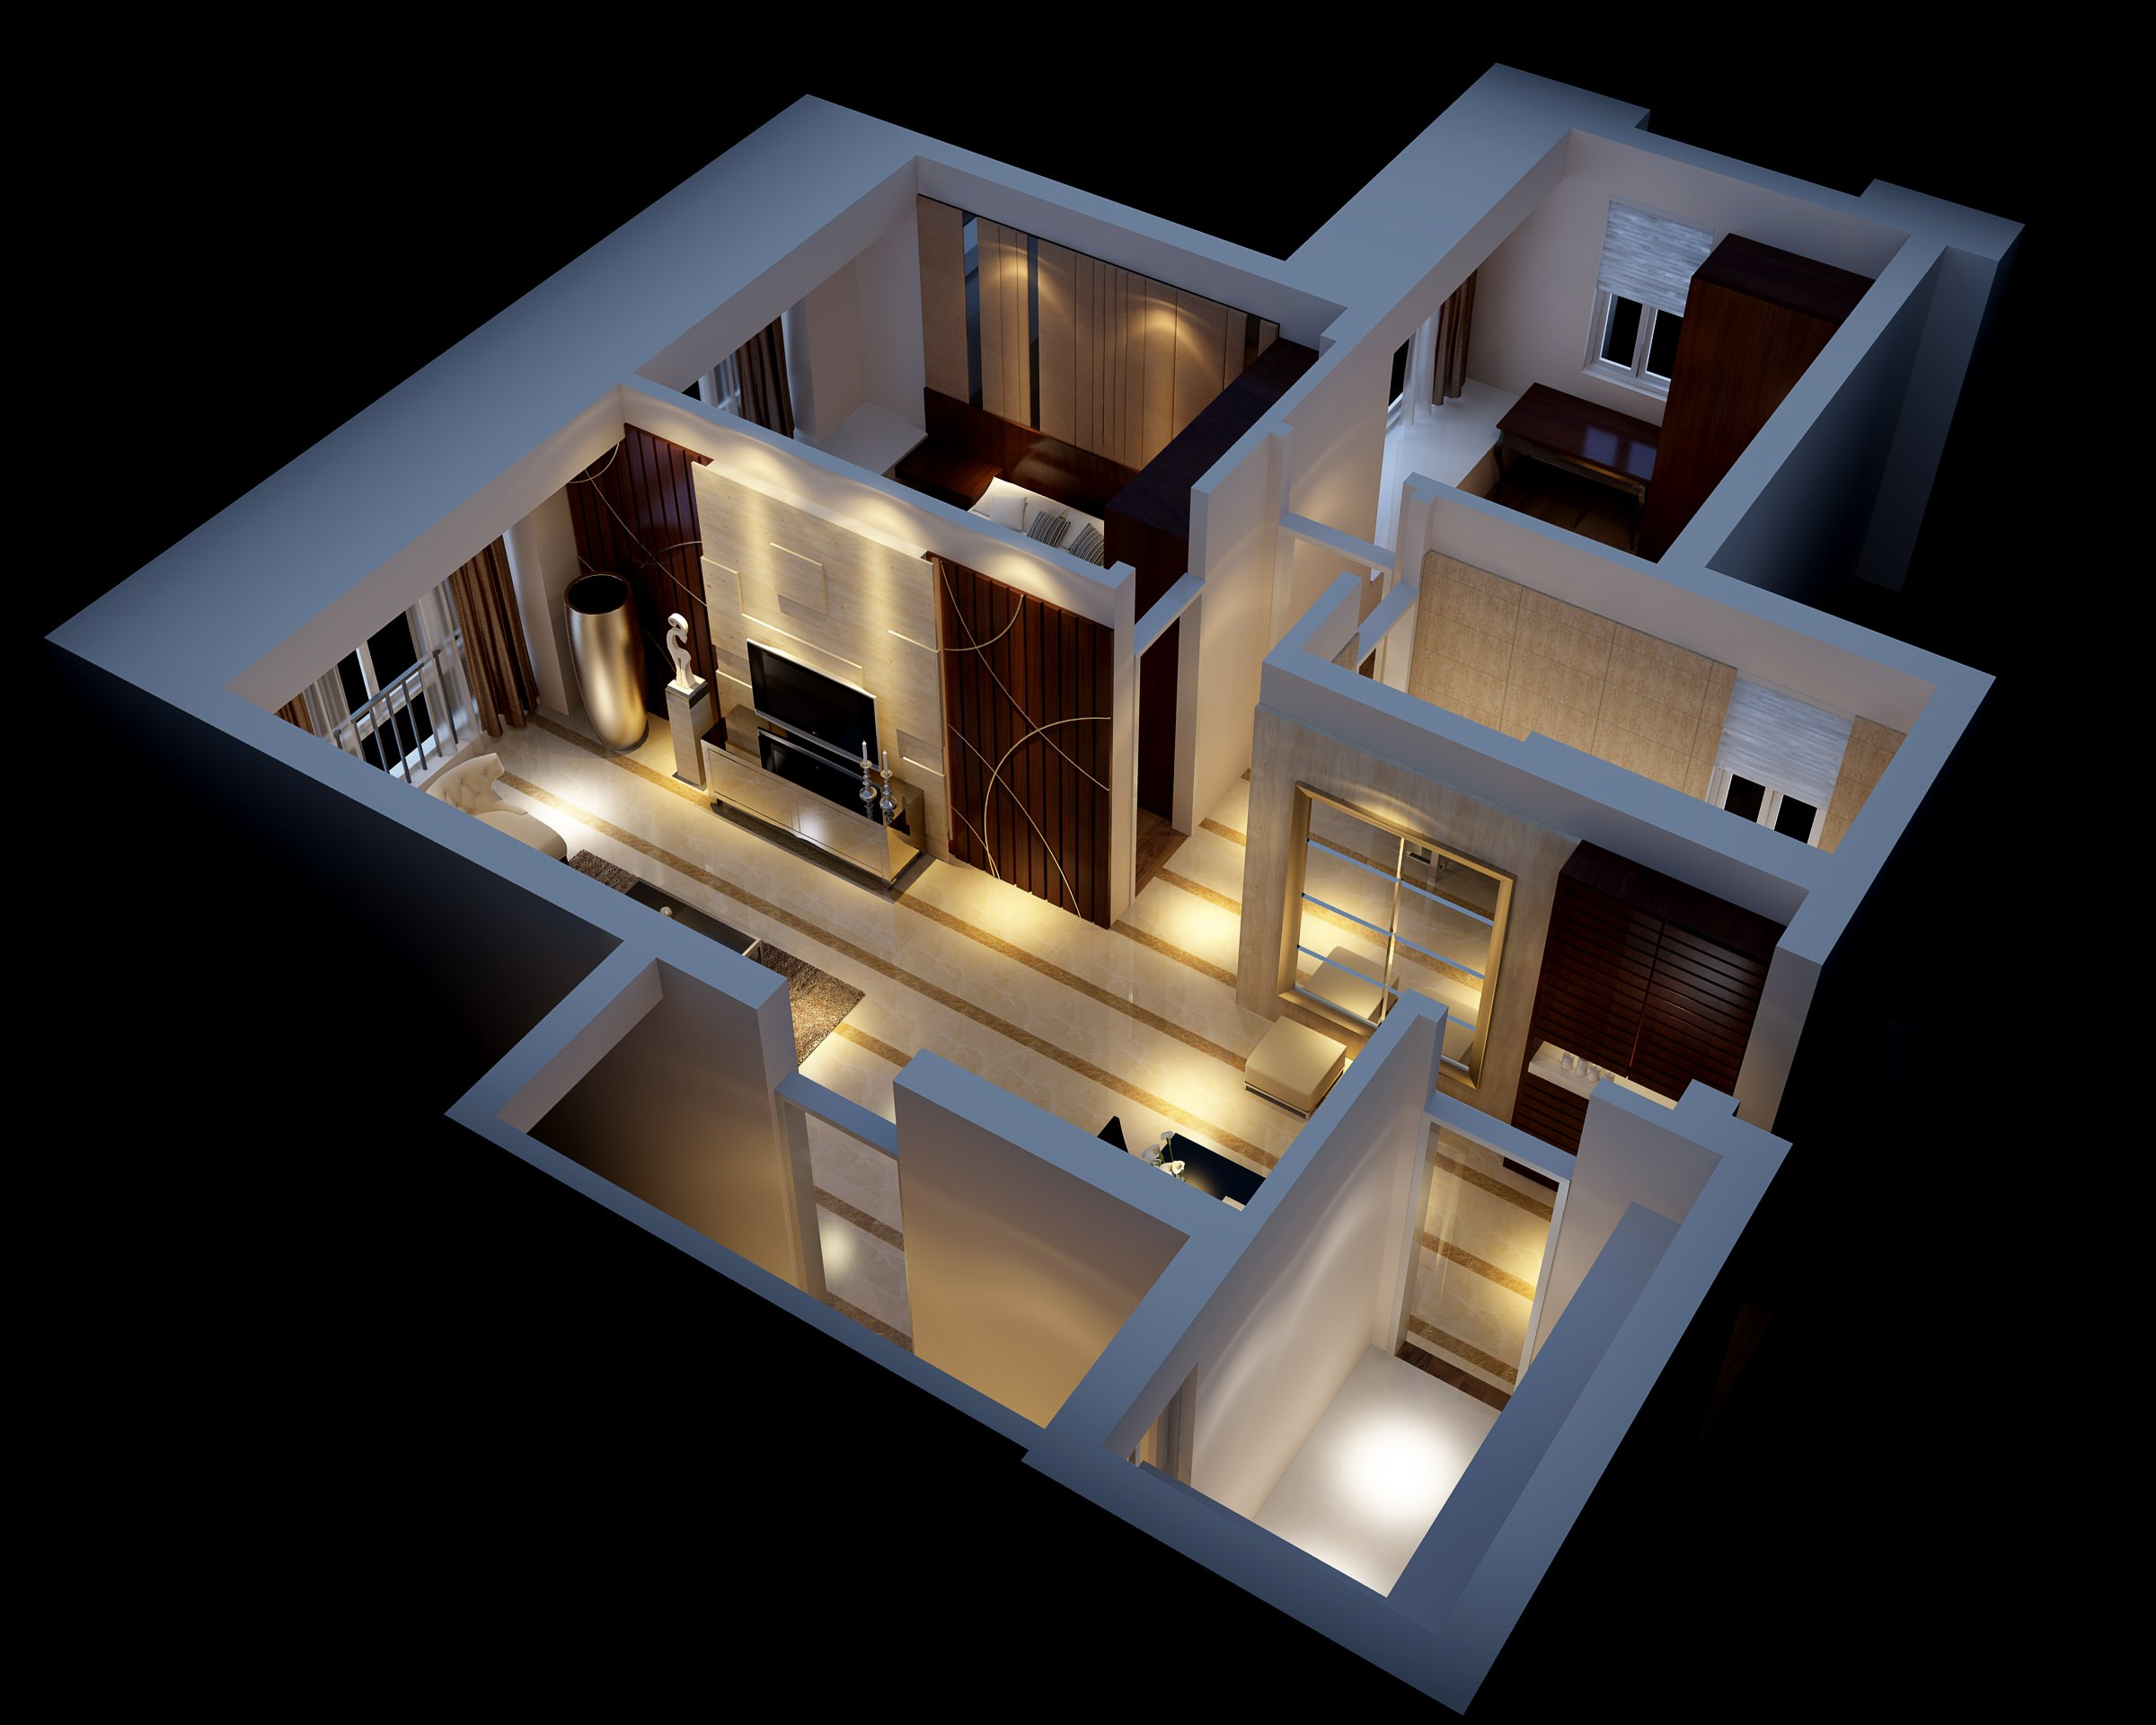 Modern house interior fully furnished 3d model max for 3d house model maker